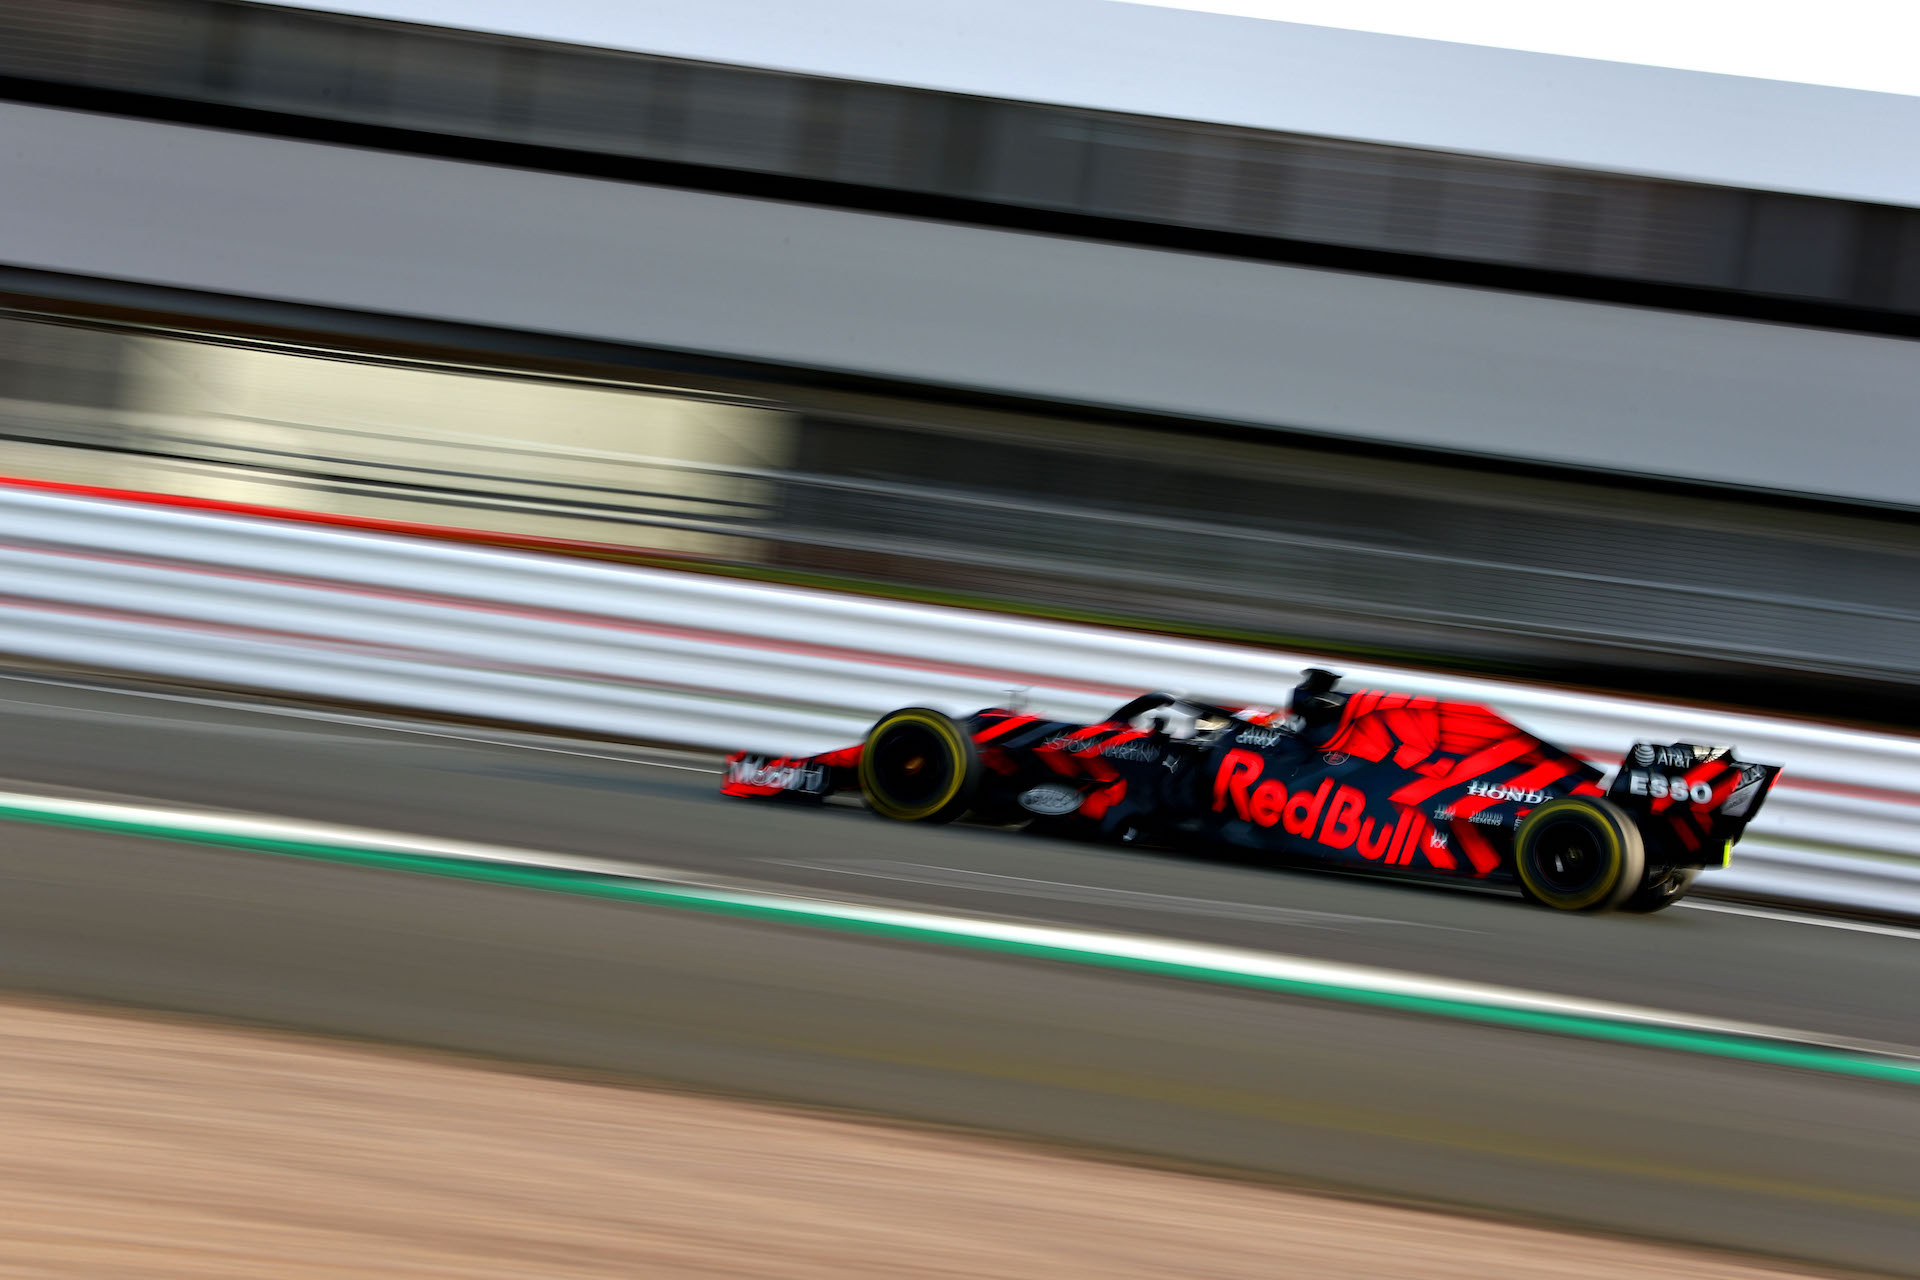 2019 Red Bull Racing F1 car revealed, fires up Honda engine at